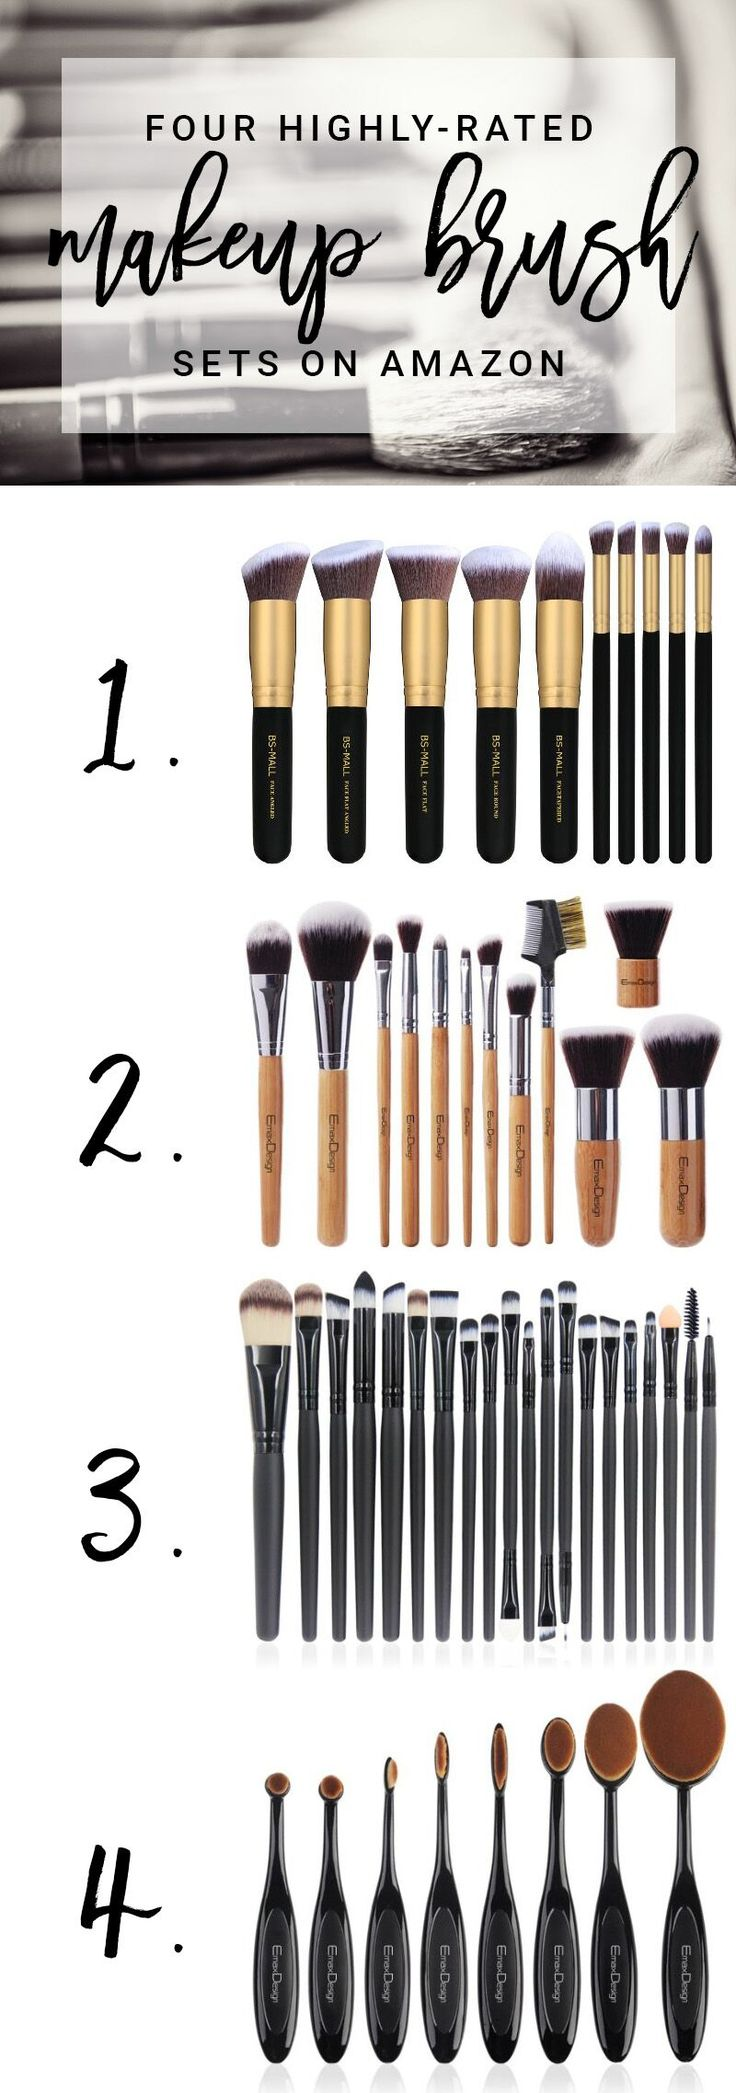 the best makeup brush sets on amazon (so many steals!) makeup products - http://amzn.to/2jywVxP